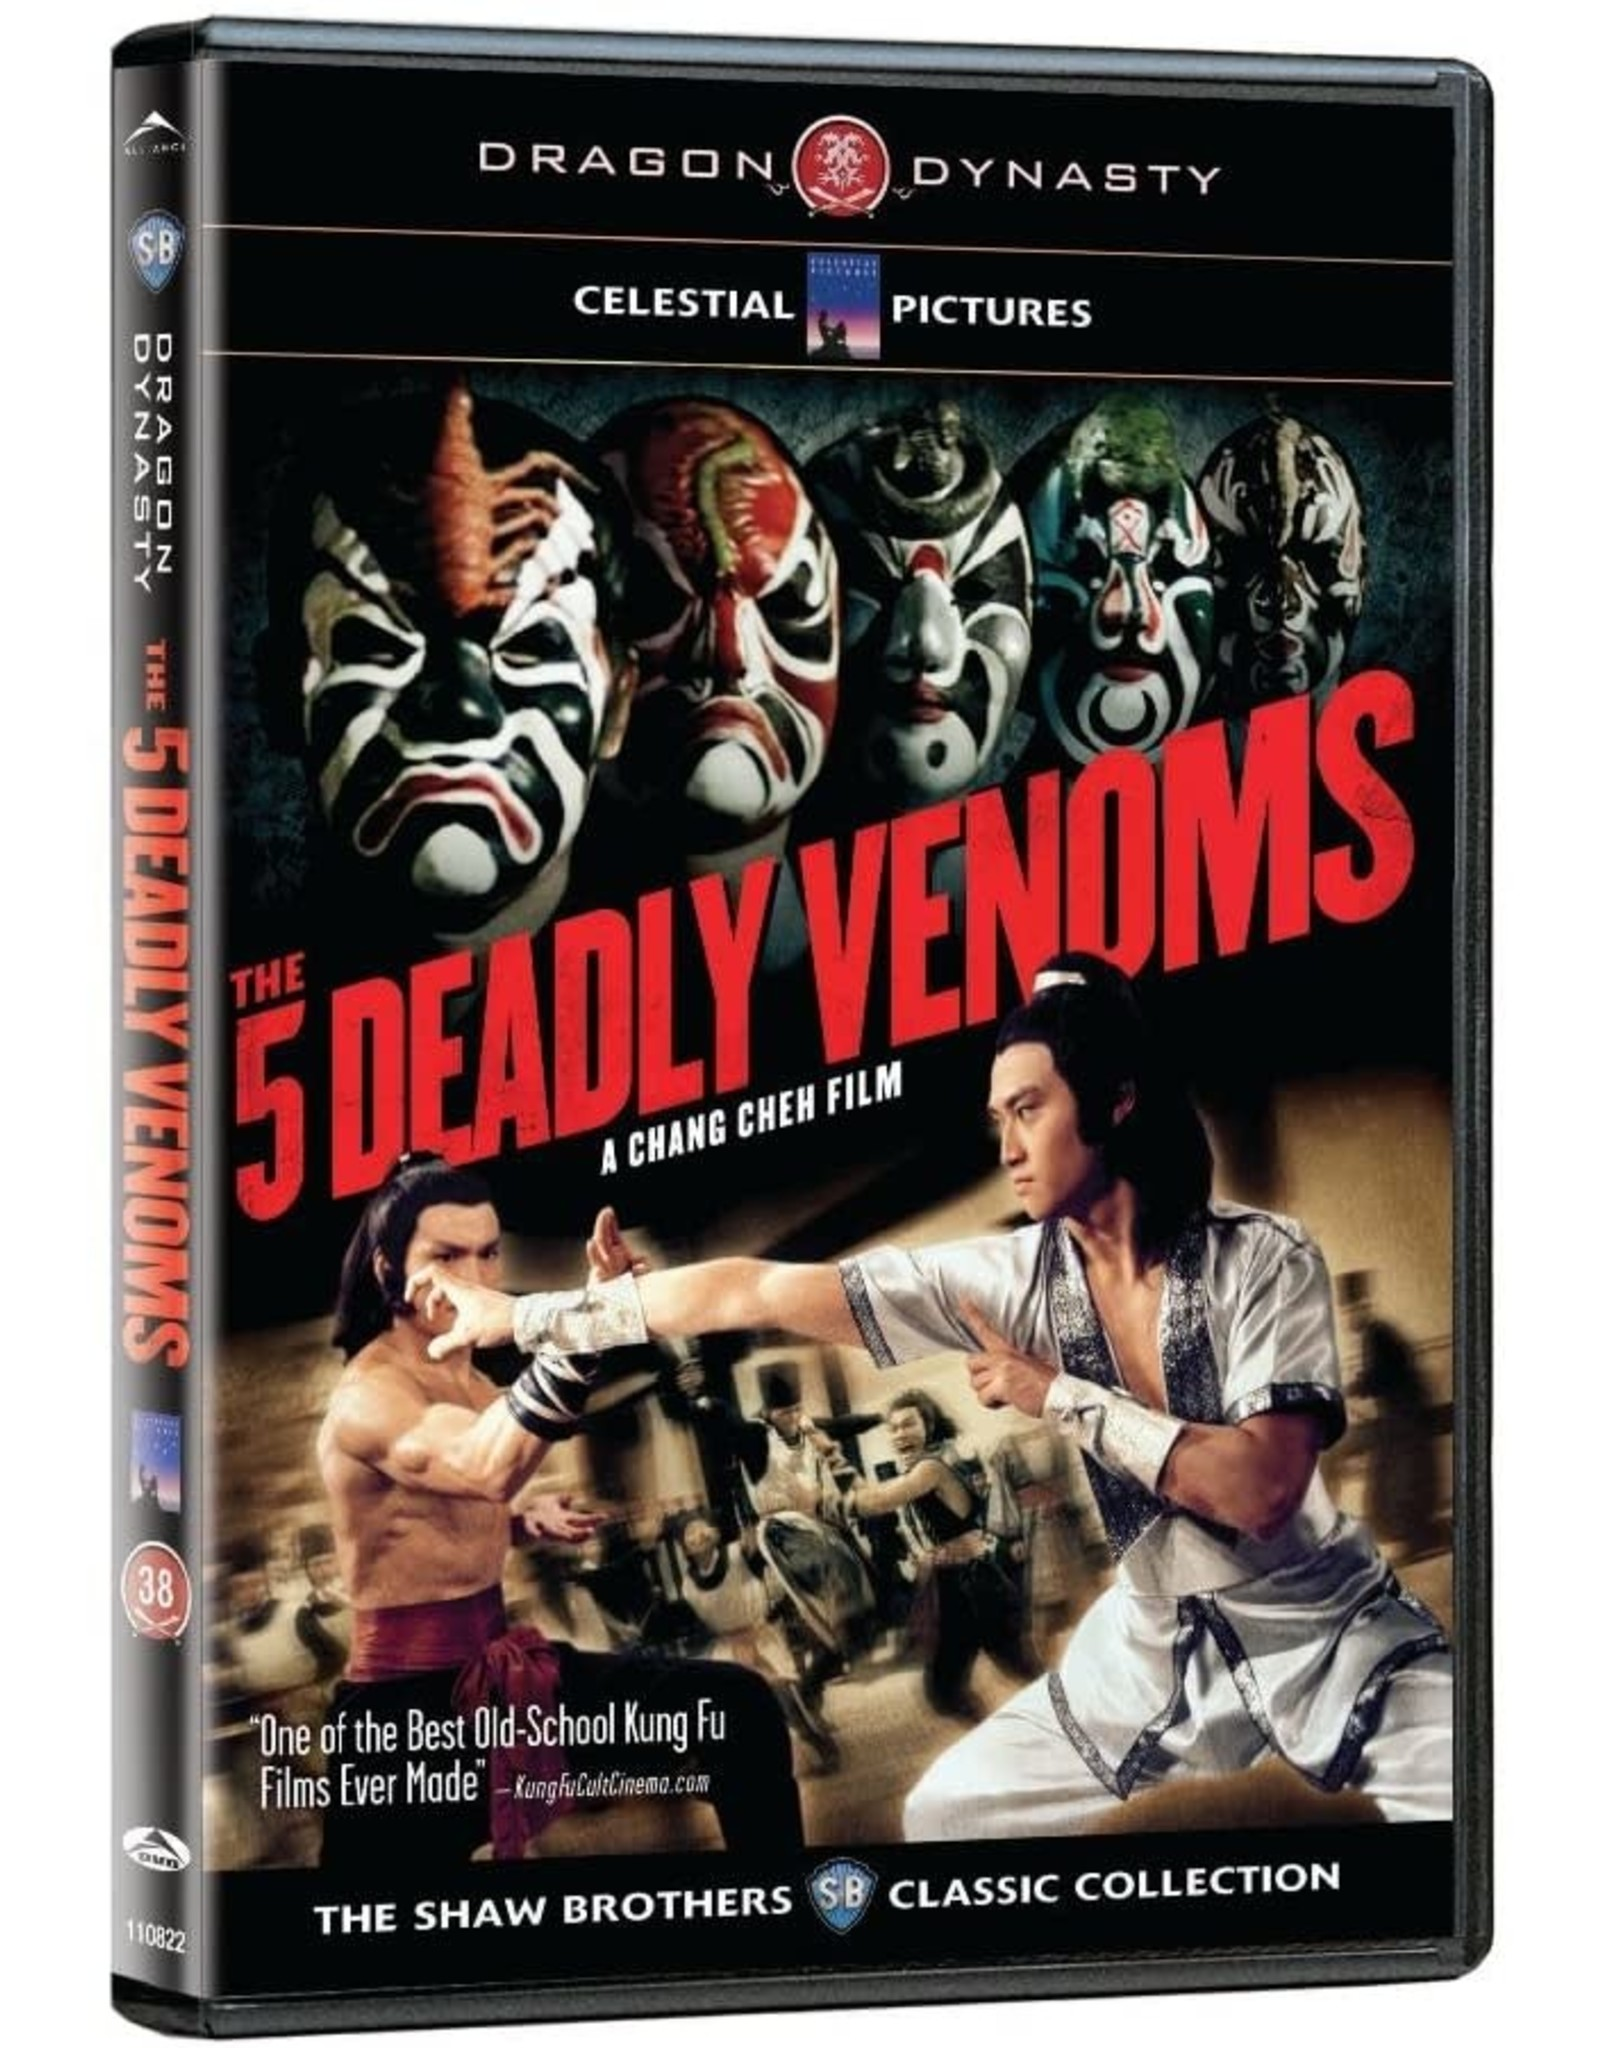 Cult and Cool 5 Deadly Venoms, The